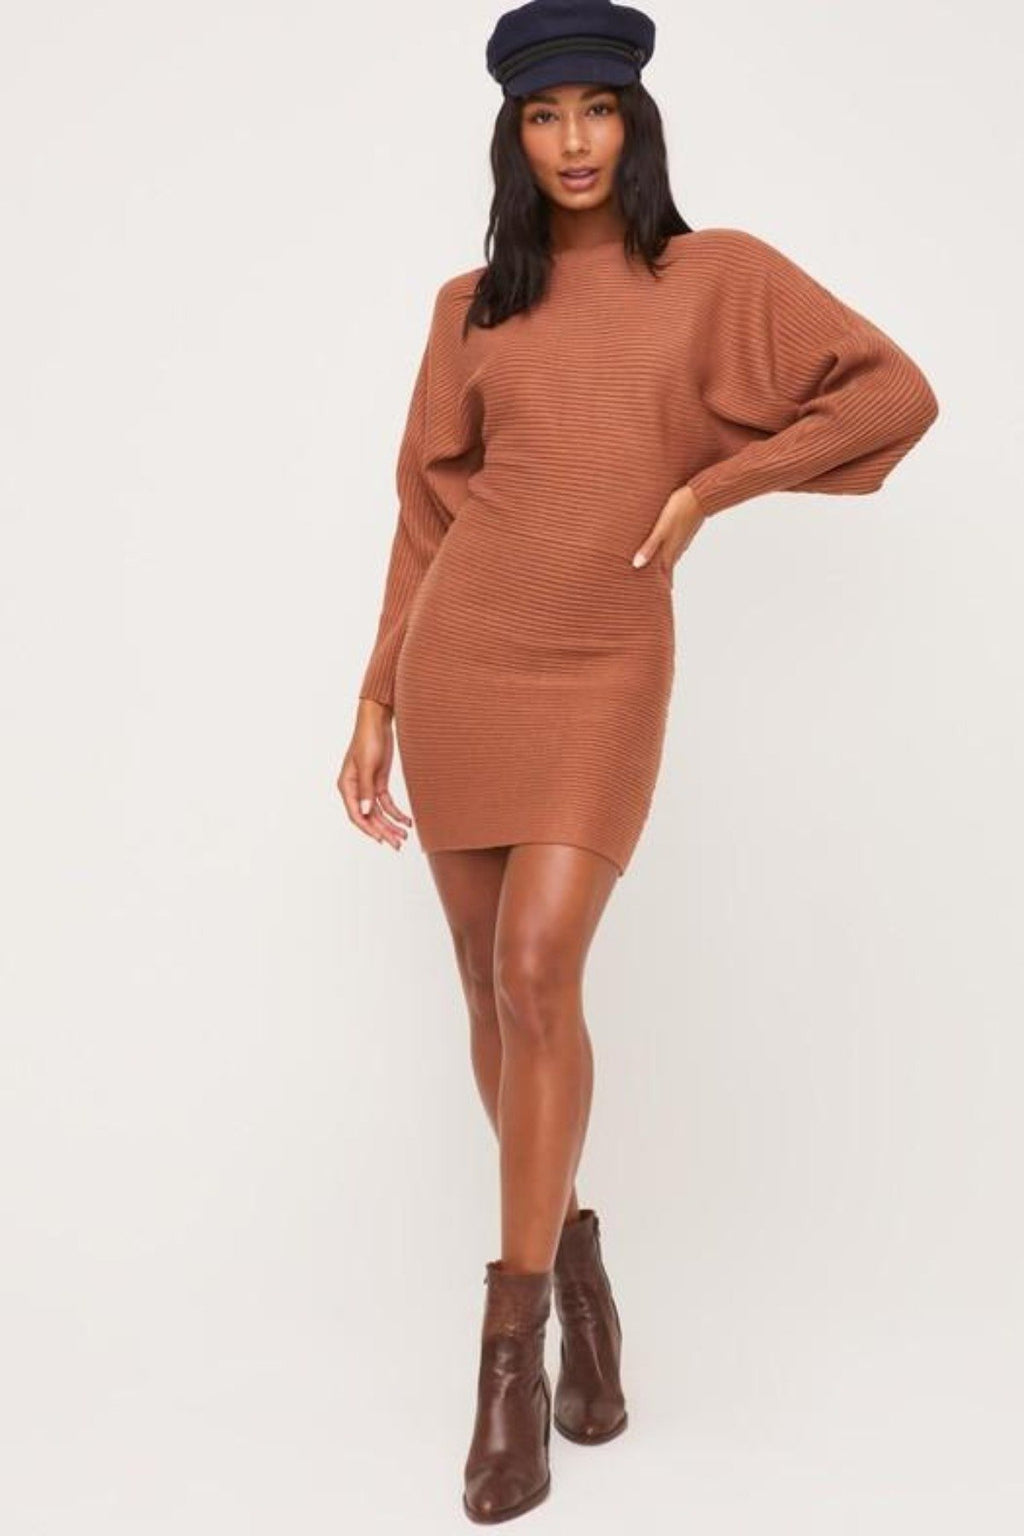 AMBER ROMANCE RIBBED SWEATER DRESS - [jayden_p]